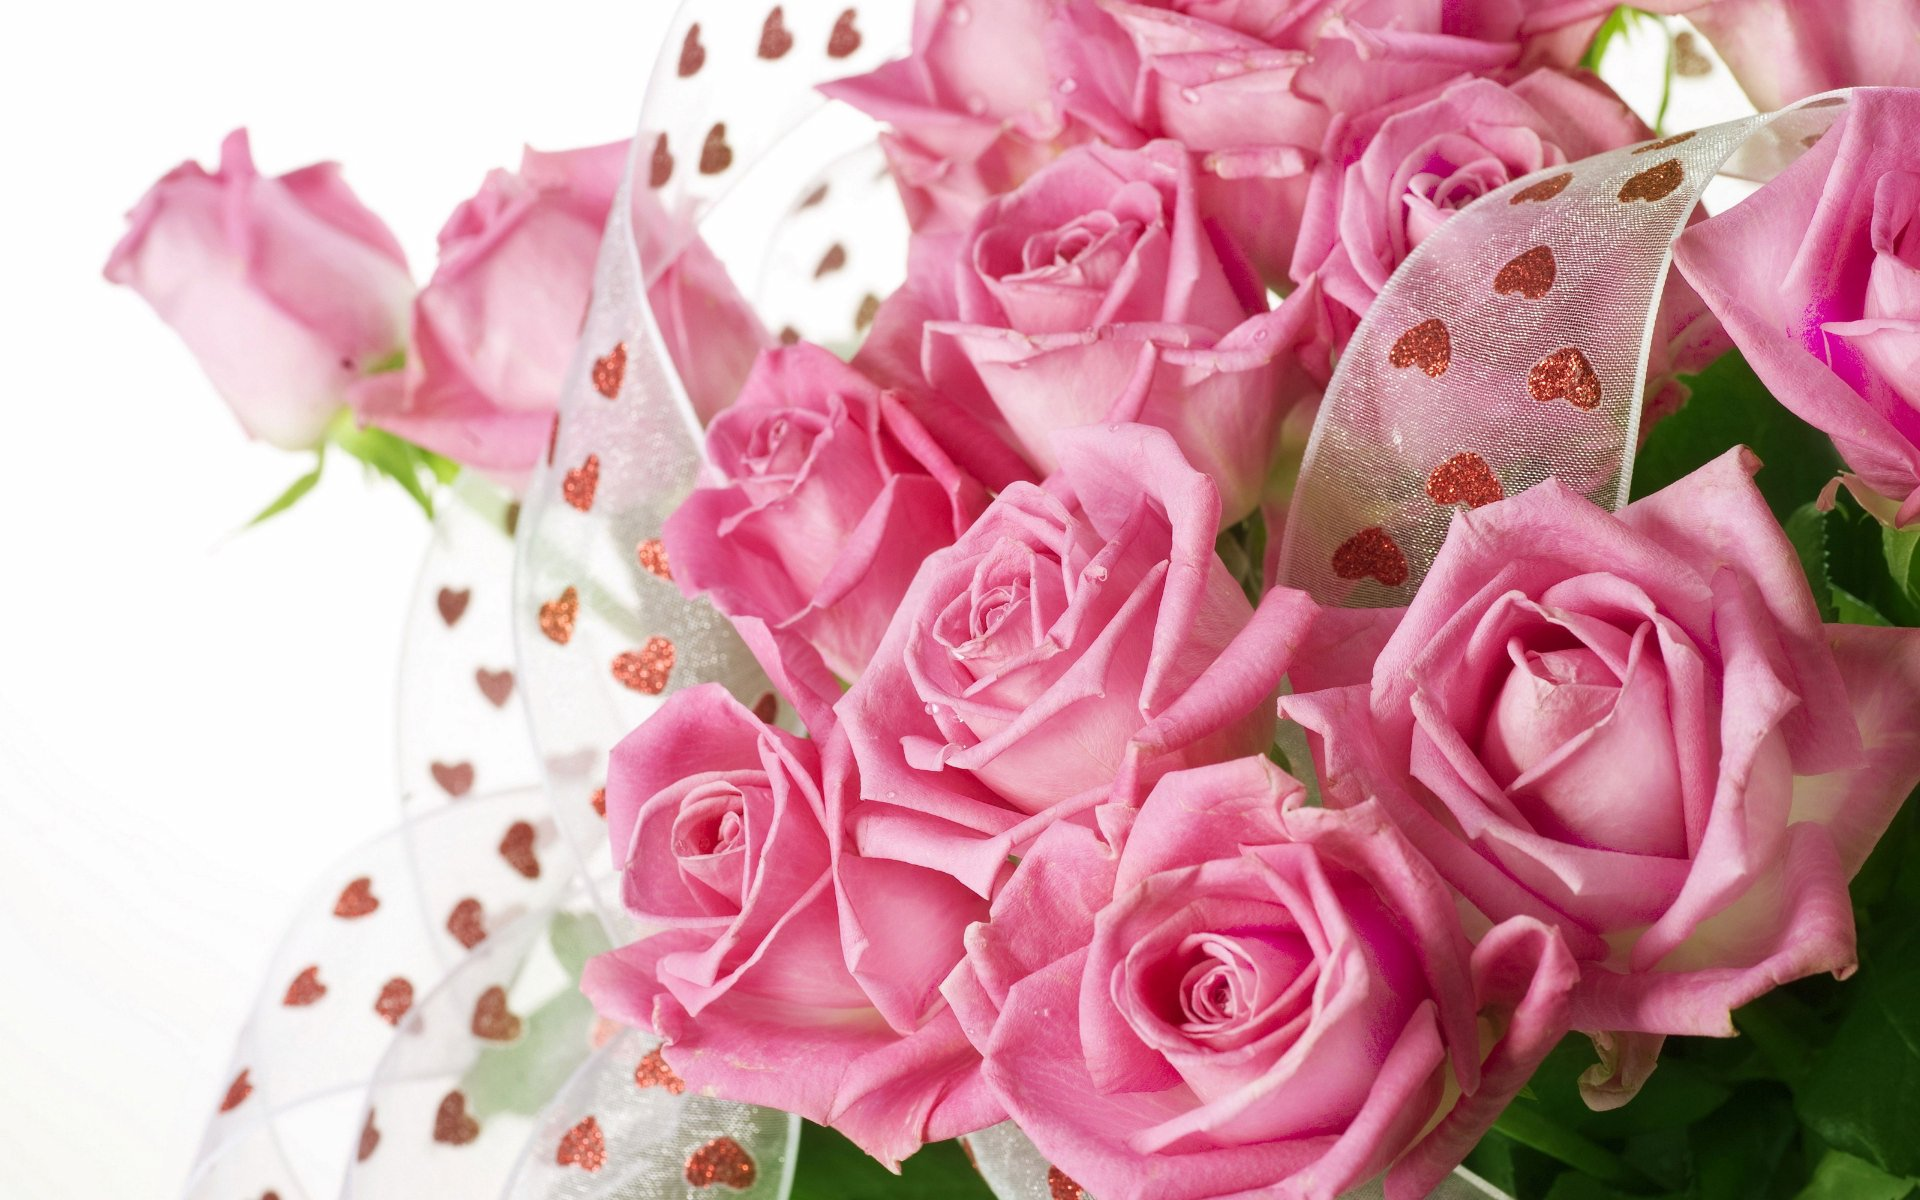 beautiful pictures of roses for wallpaper,flower,garden roses,flowering plant,rose,pink